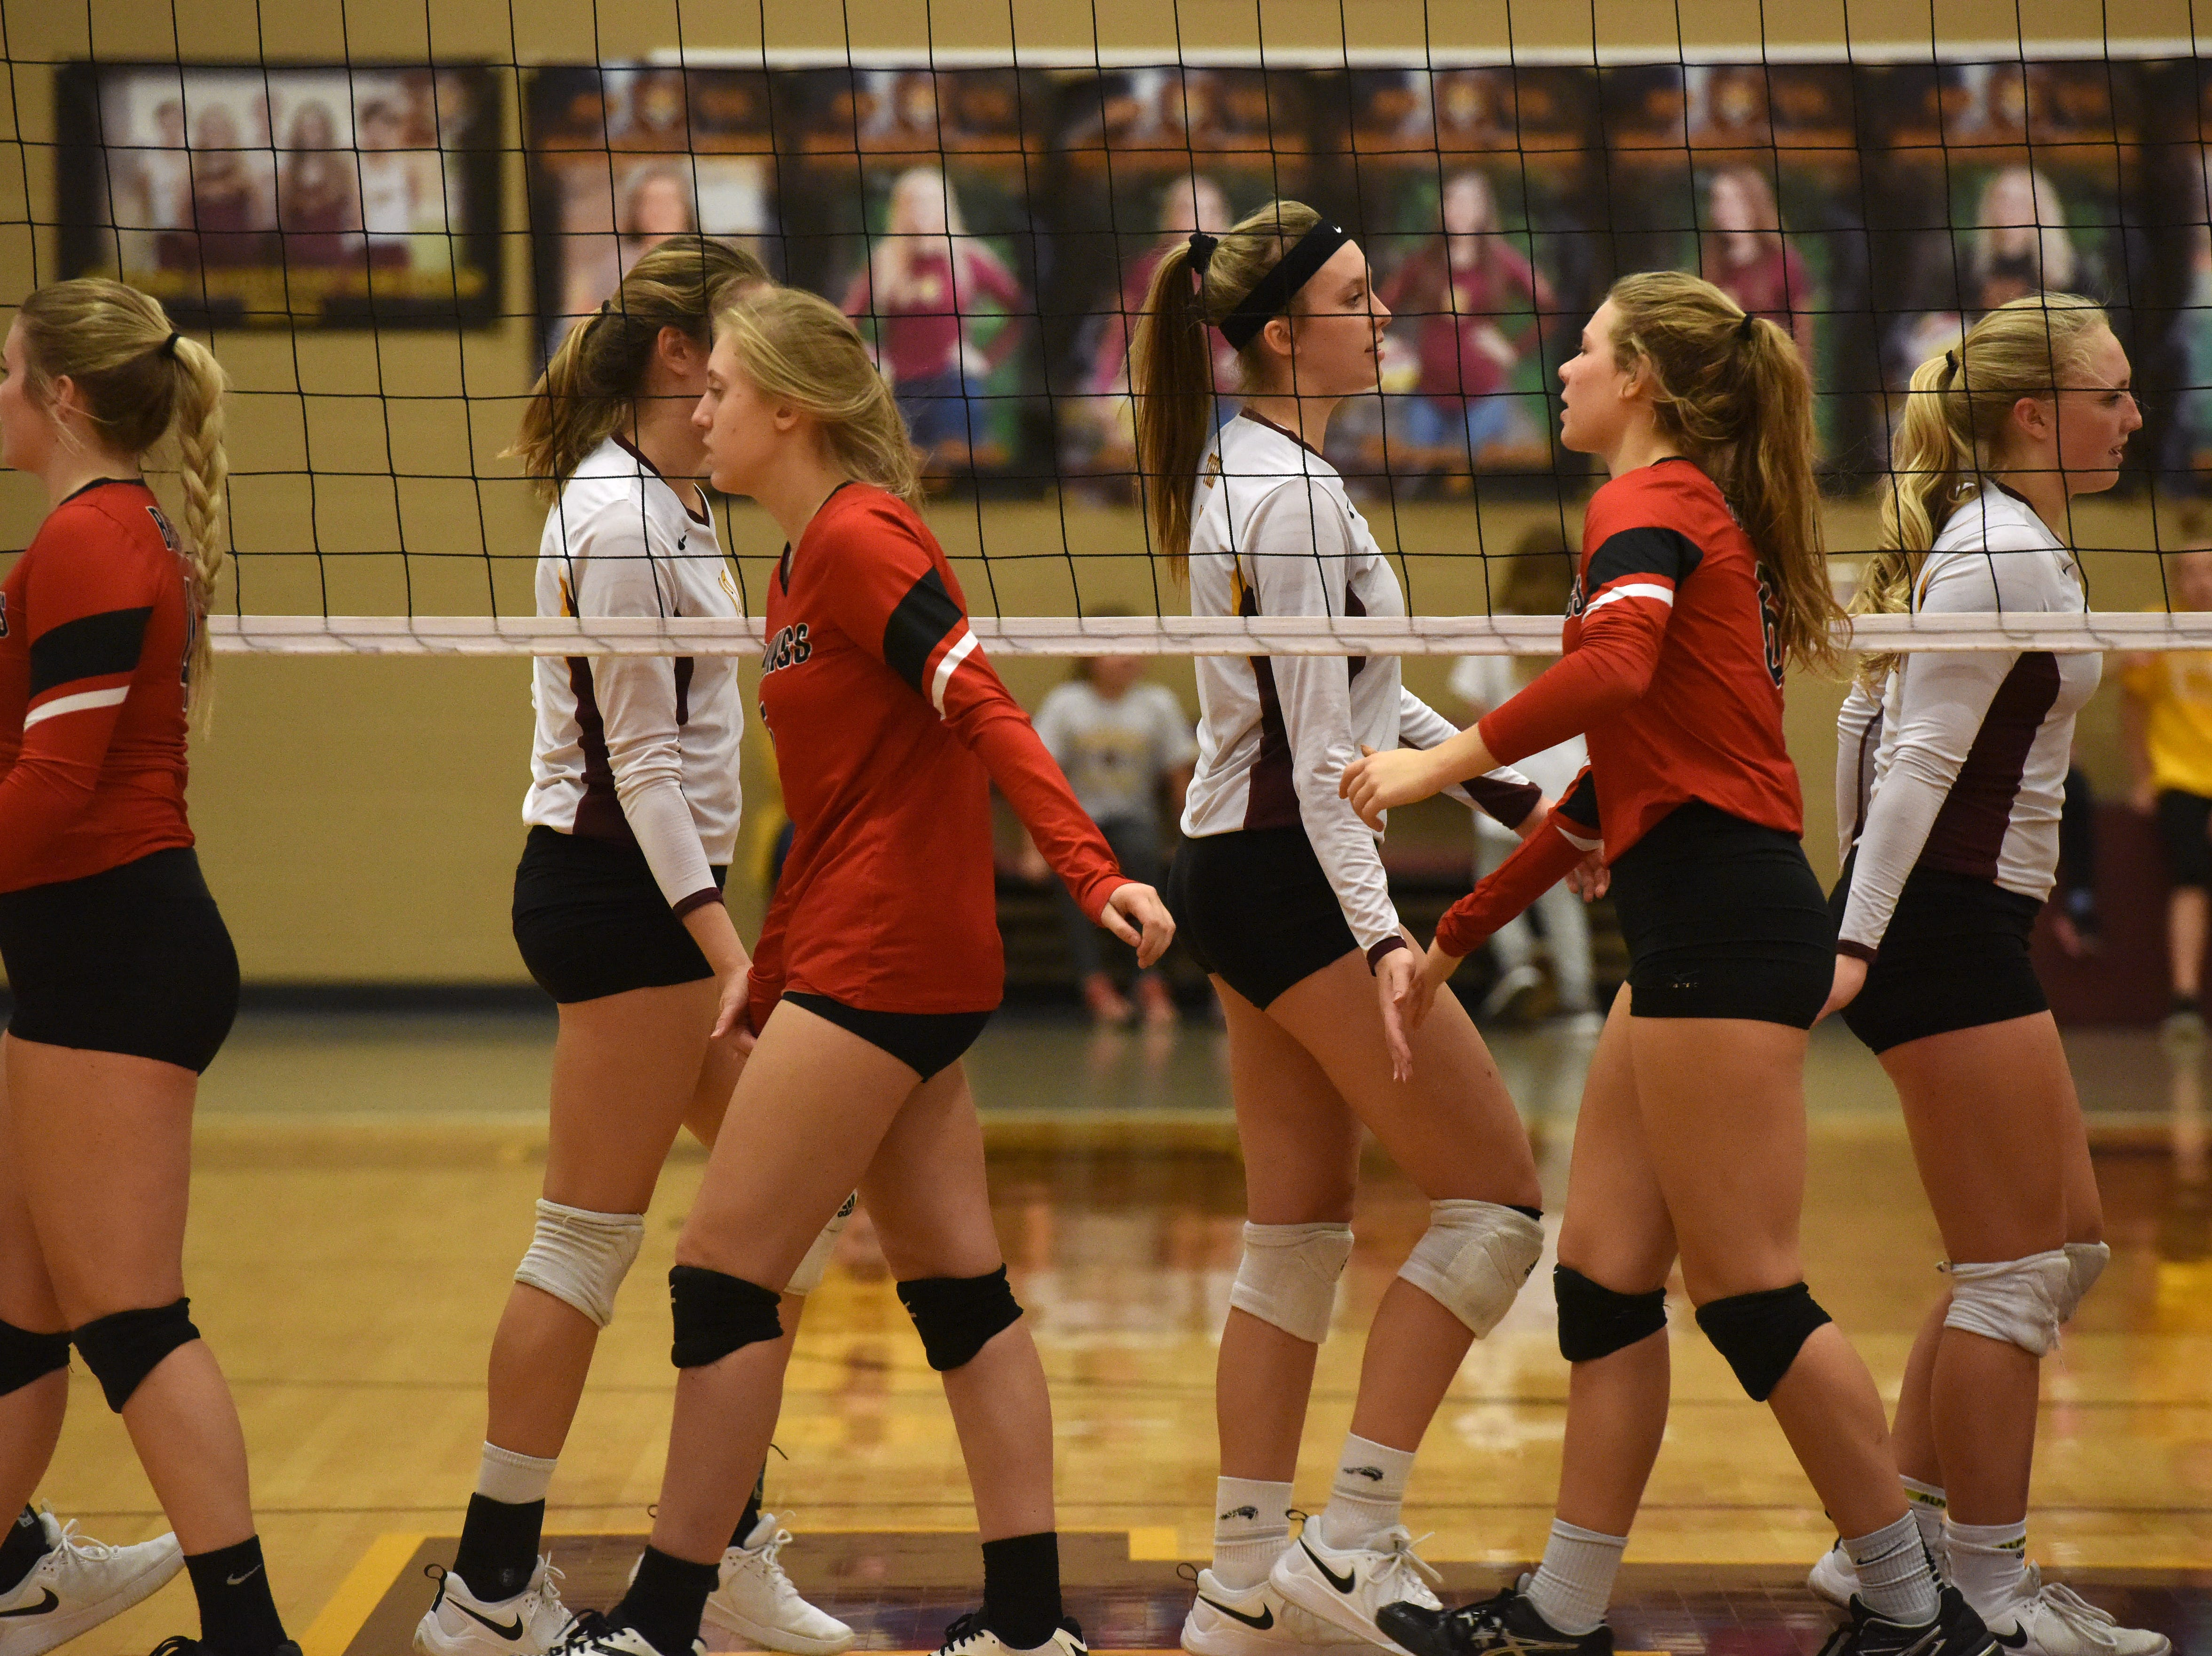 Harrisburg and Brookings' players give each other high-fives before a match Tuesday, Oct. 30, 2018 in Harrisburg, S.D.